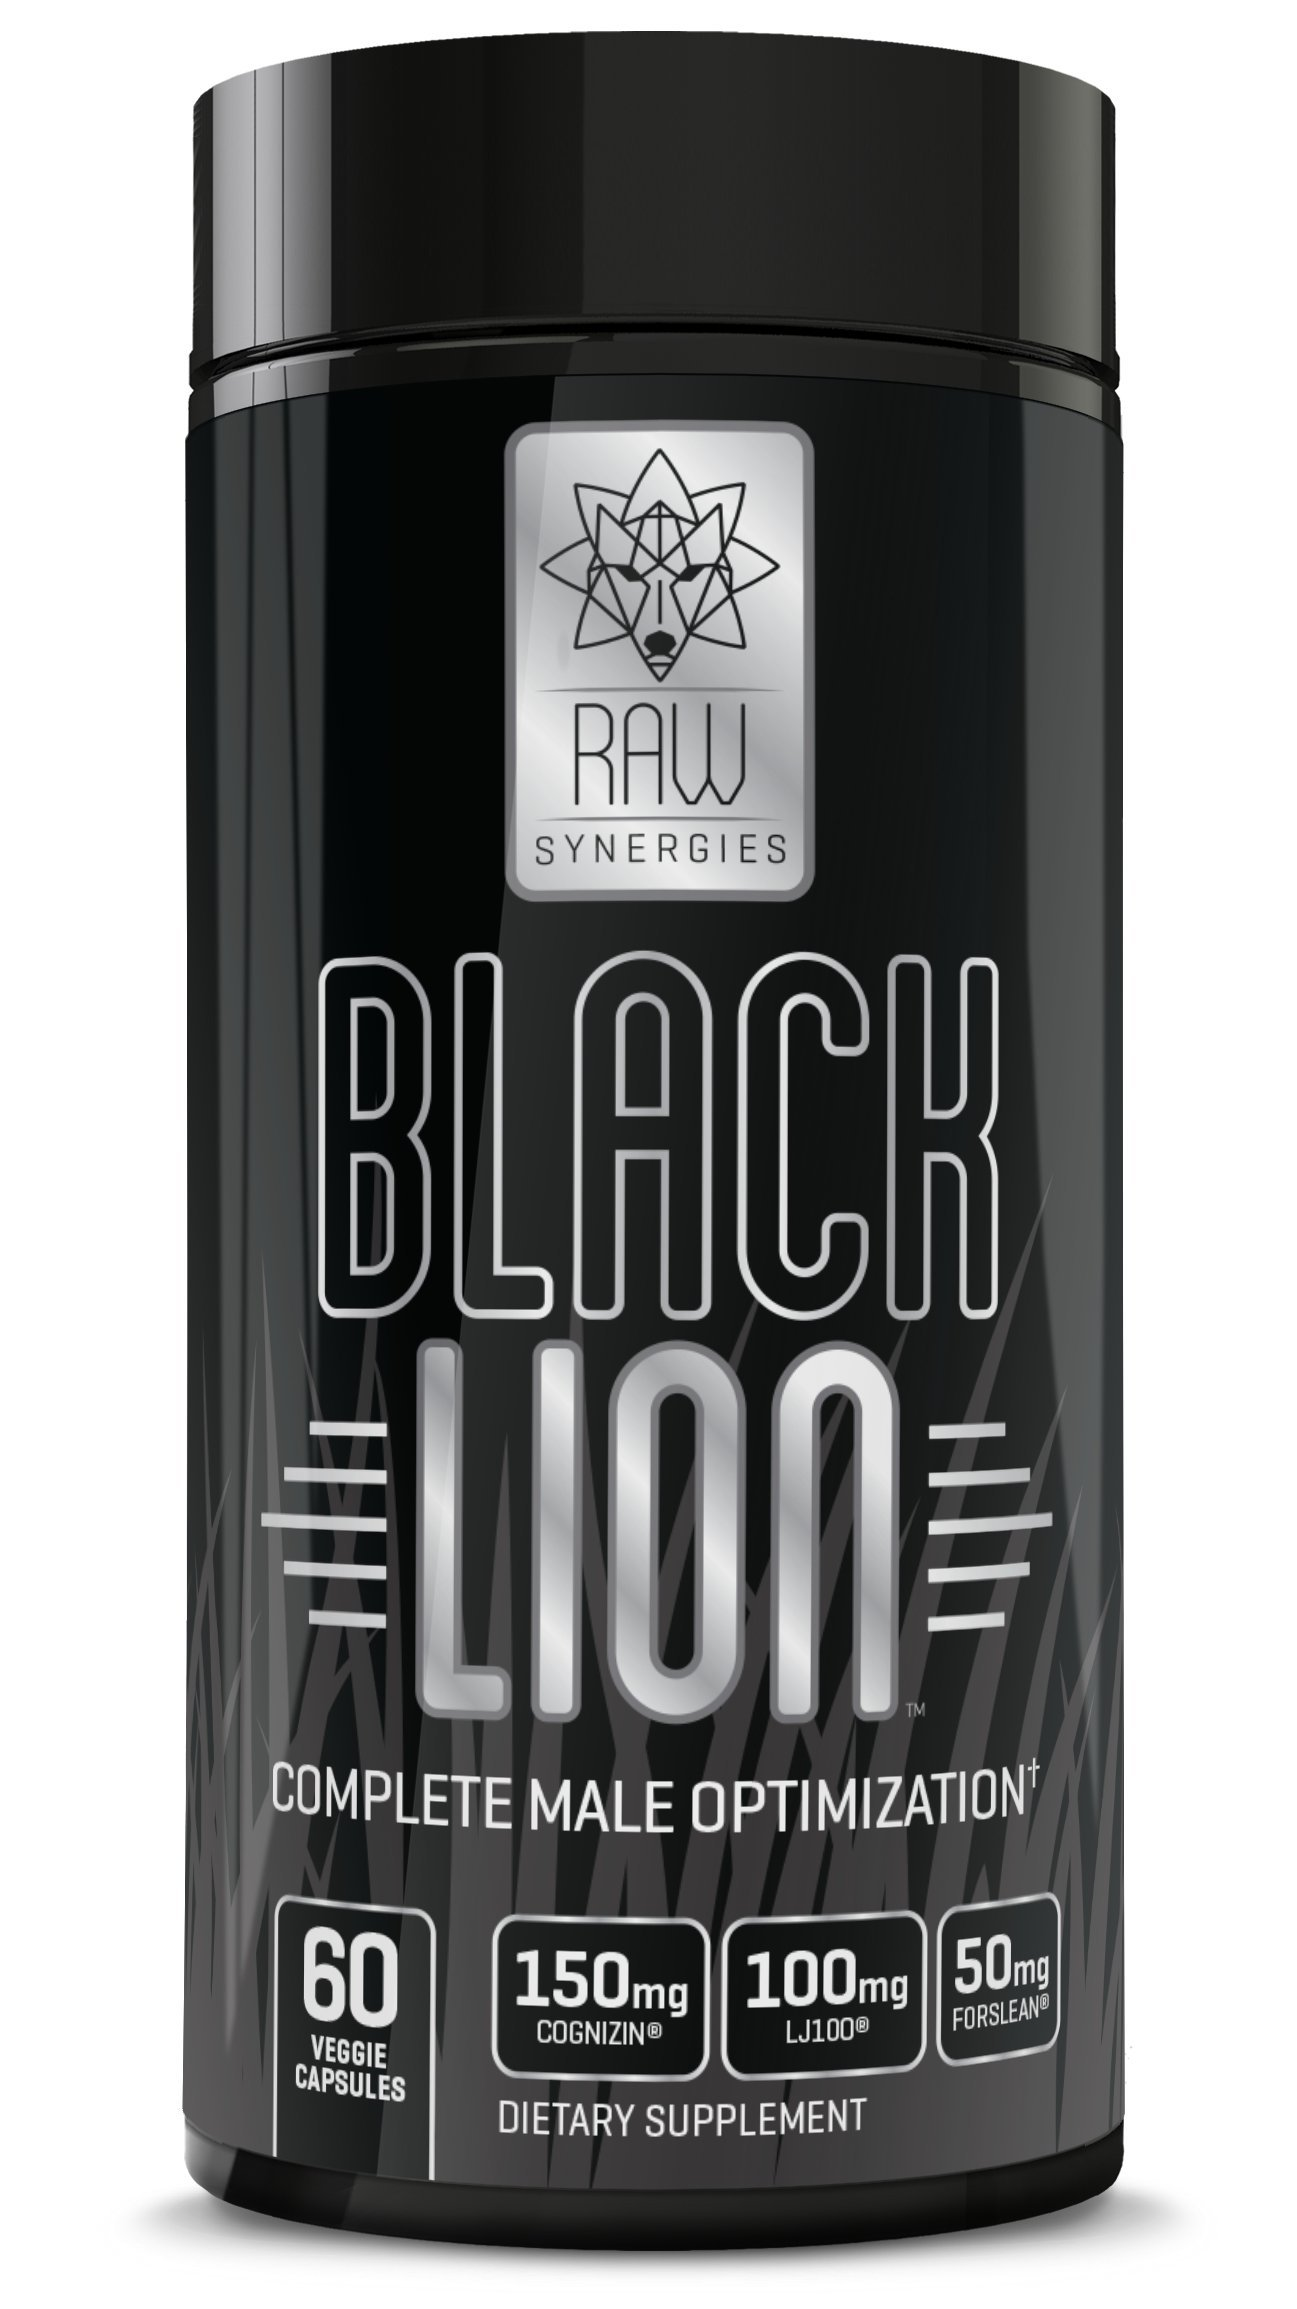 RAW Synergies Black Lion - Thermogenic Test Booster and Fat Burner for Men, Natural Brain Supplement and Estrogen Blocker with DIM and Pure Forskolin for Weight Loss and Muscle Building, 60 sv by RAW Synergies